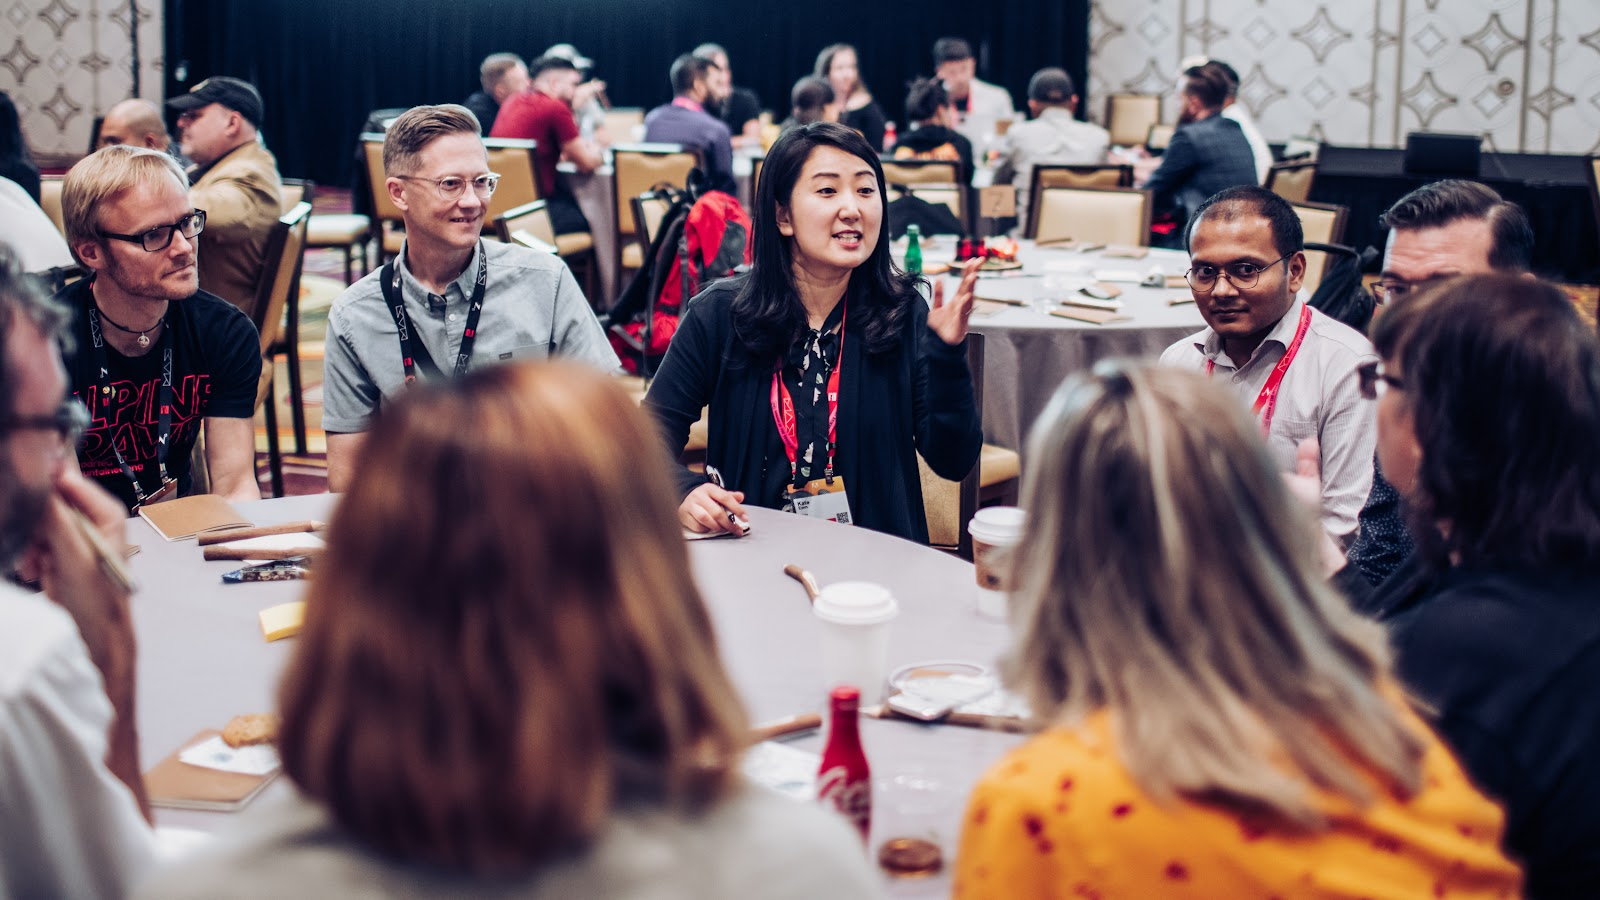 Adobe Max 2019 attendees participate in a round-table discussion at XD Summit.